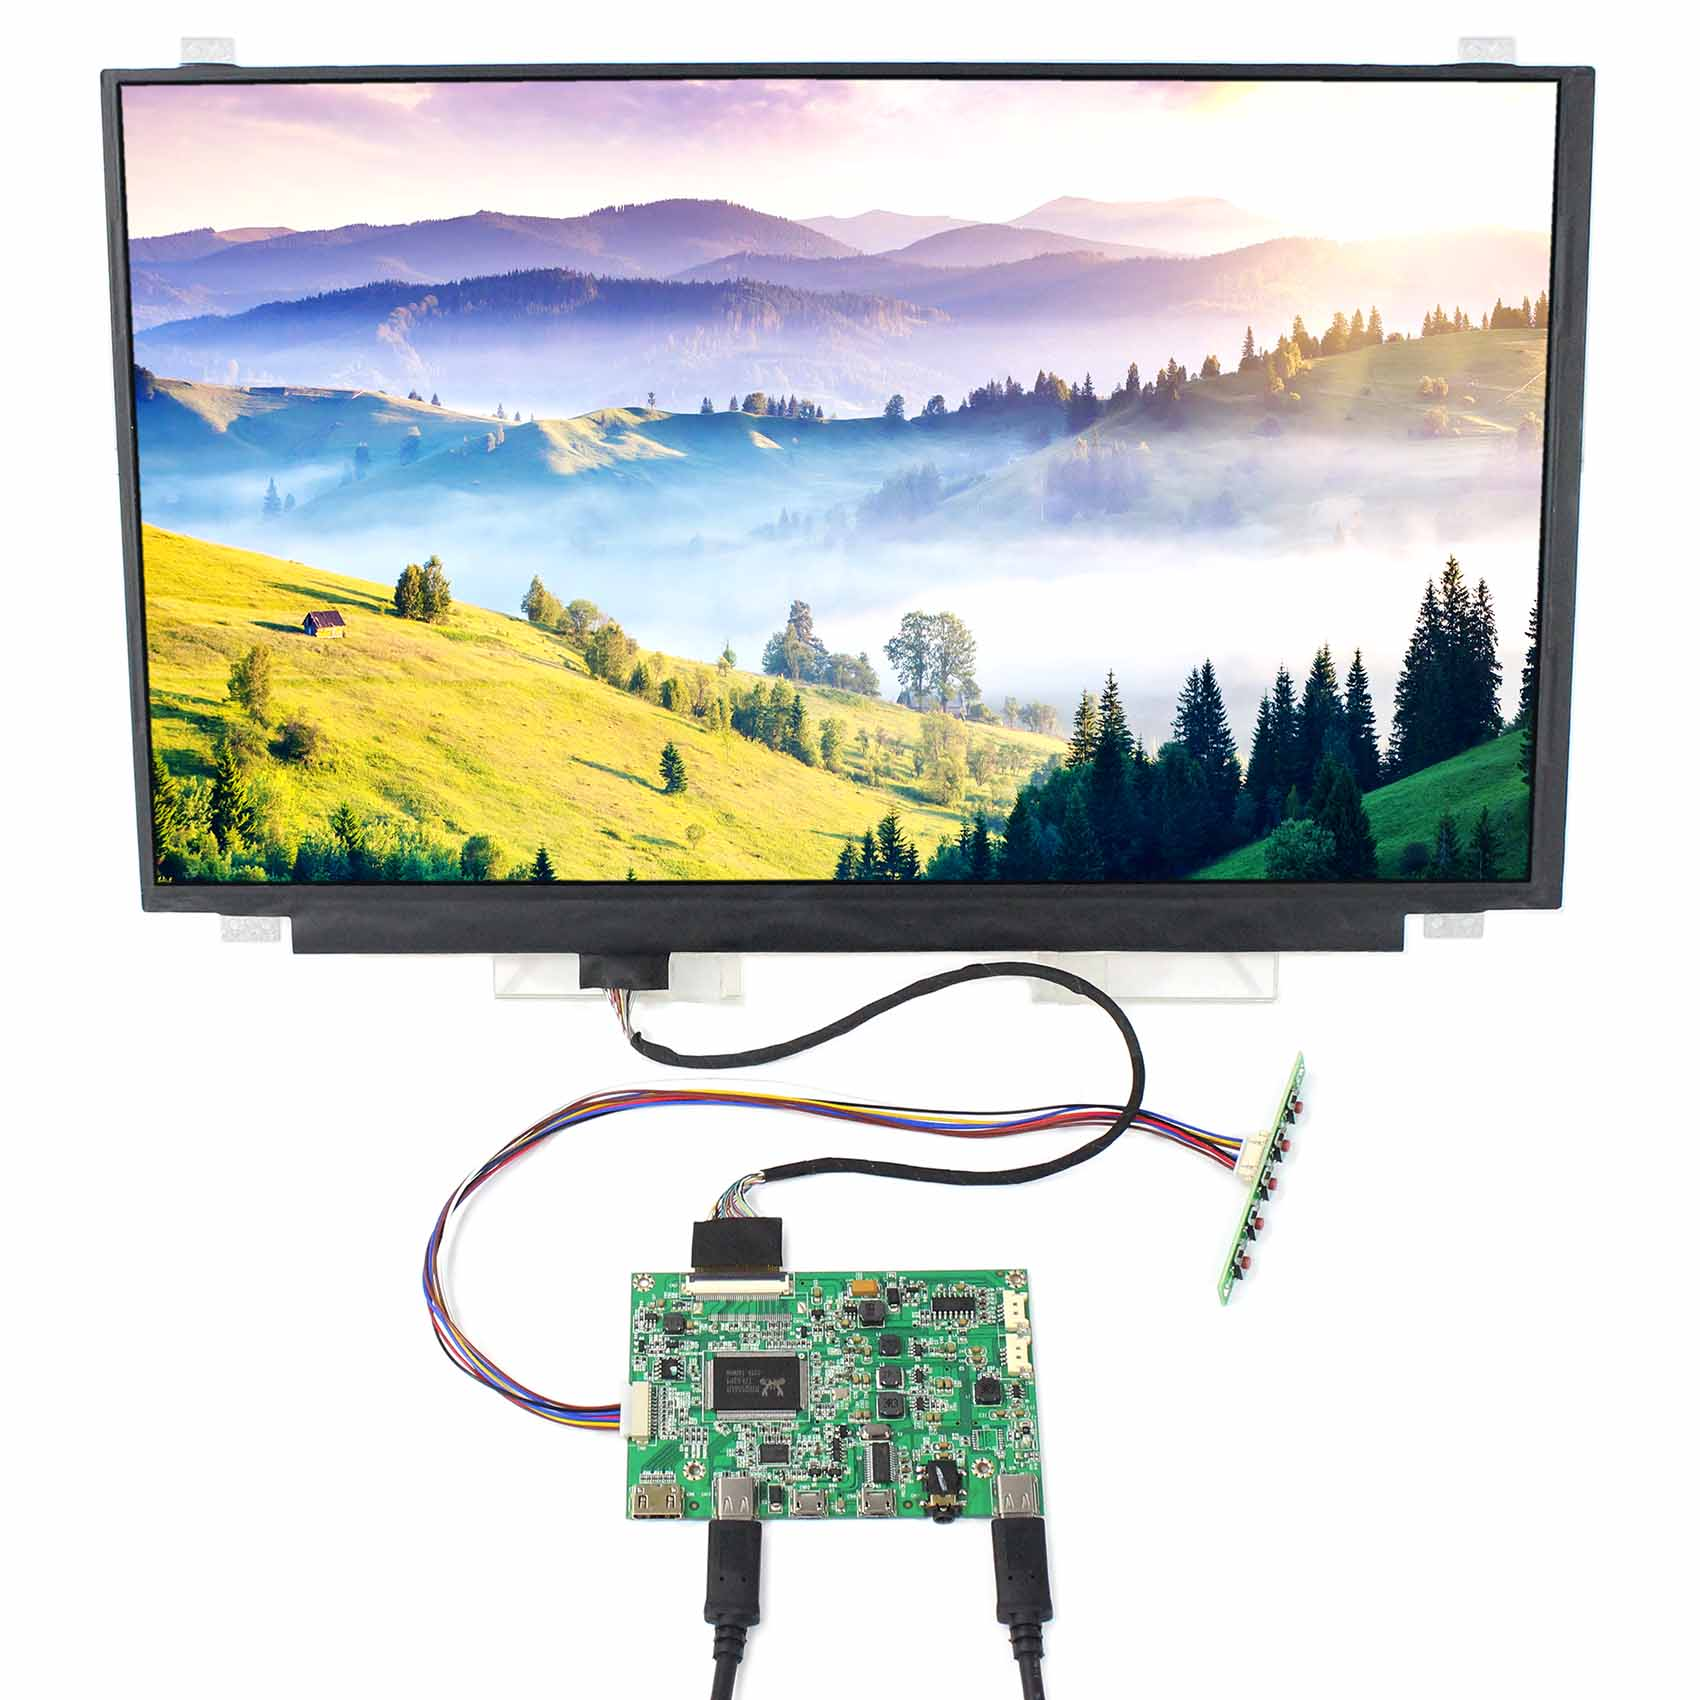 """15.6"""" touch LCD NV156FHM-T10,15.6inch 1920x1080 IPS Touch LCD (With a build-in touch screen)+HDMI Type-C Controller (HDR Board)"""